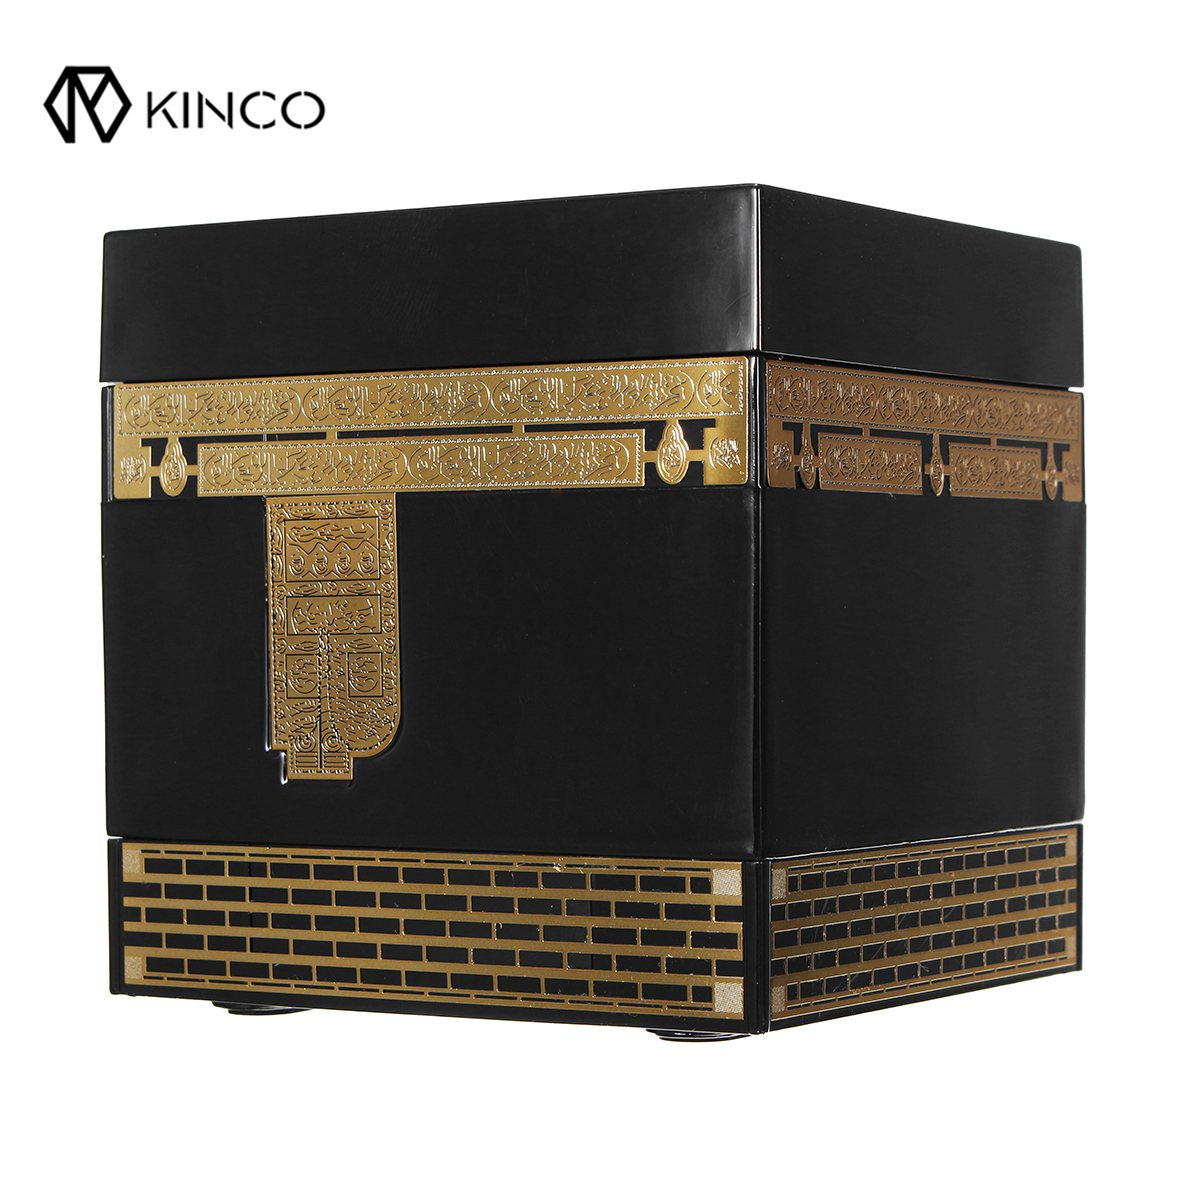 KINCO Wireless Remote Control Quran Bluetooth Speaker Portable MP3 FM Radio Speaker with 24 Languages digital quran lamp with azan clock colorful led light quran player fm radio quran free download english italian translator